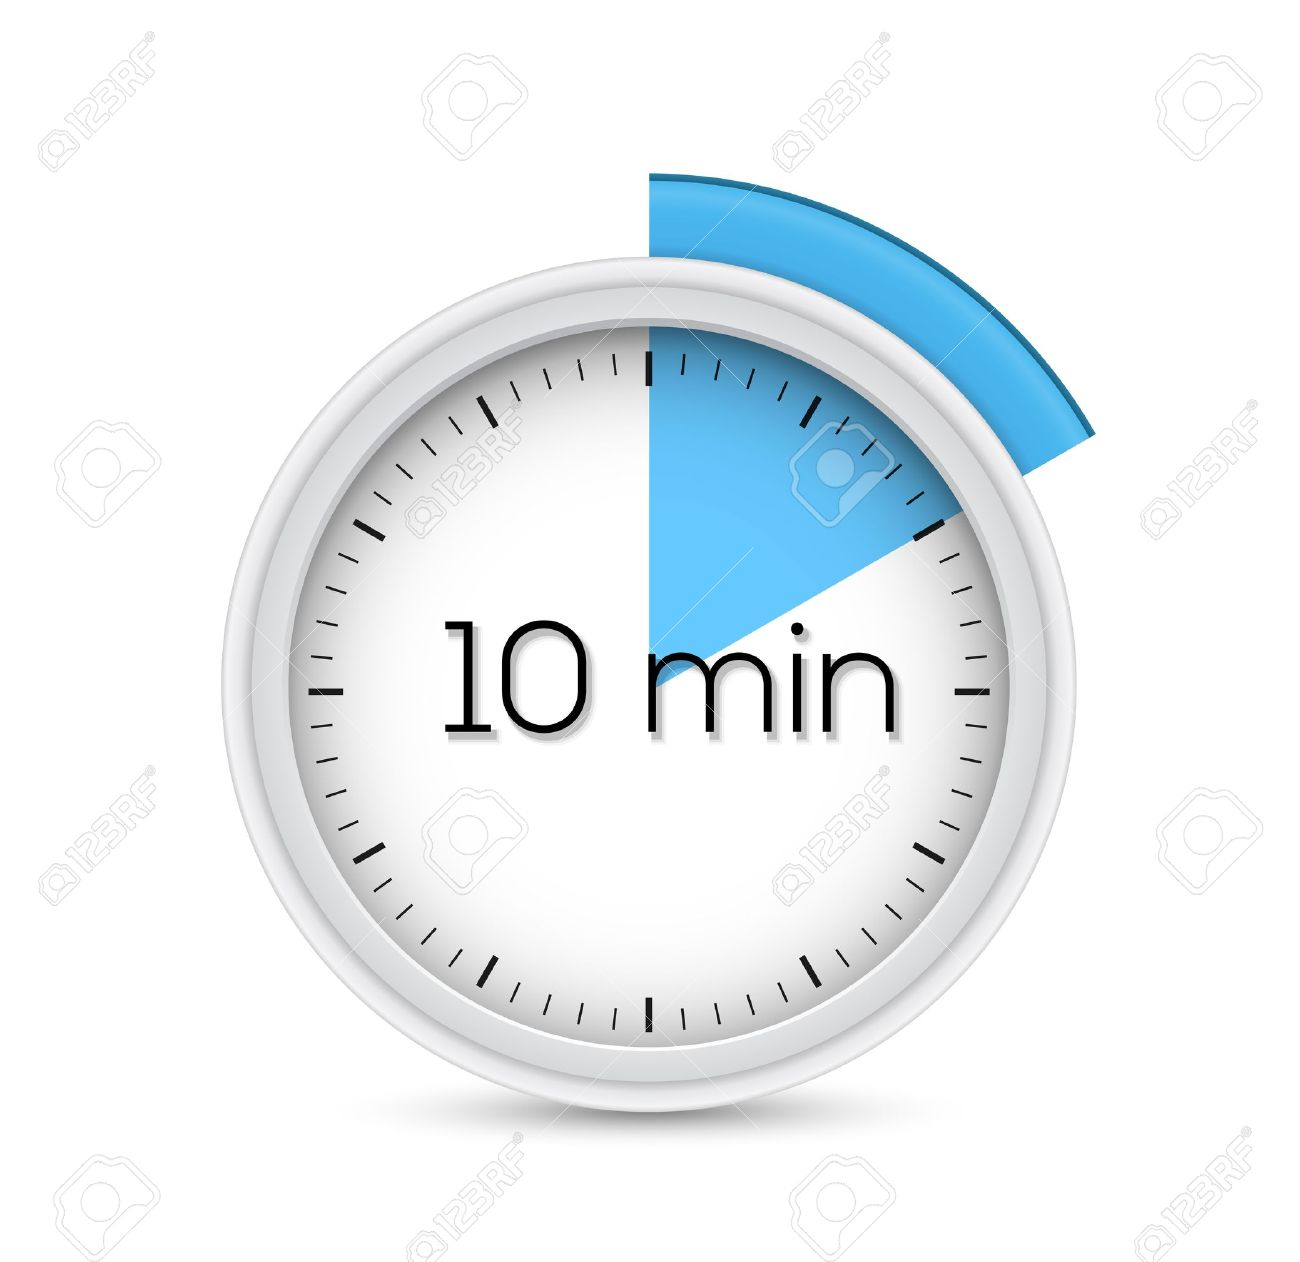 Ten Minutes Stopwatch Timer Illustration Royalty Free Cliparts ...